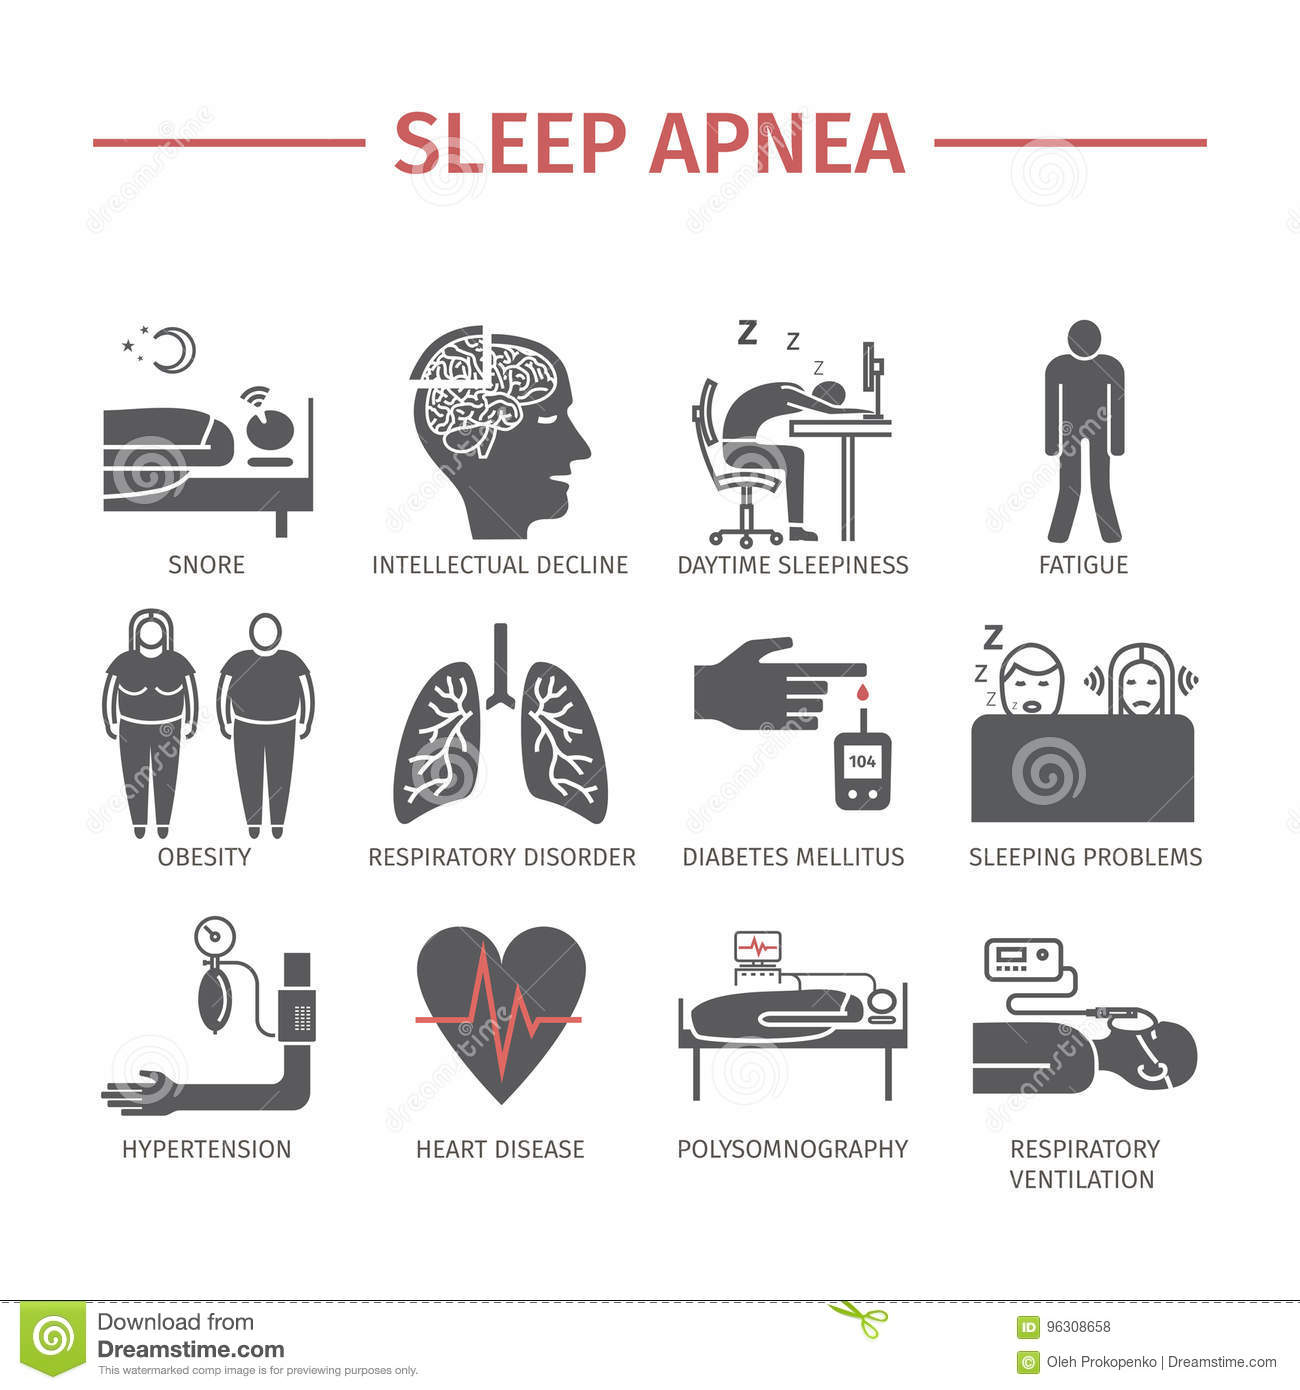 Sleep apnea dating